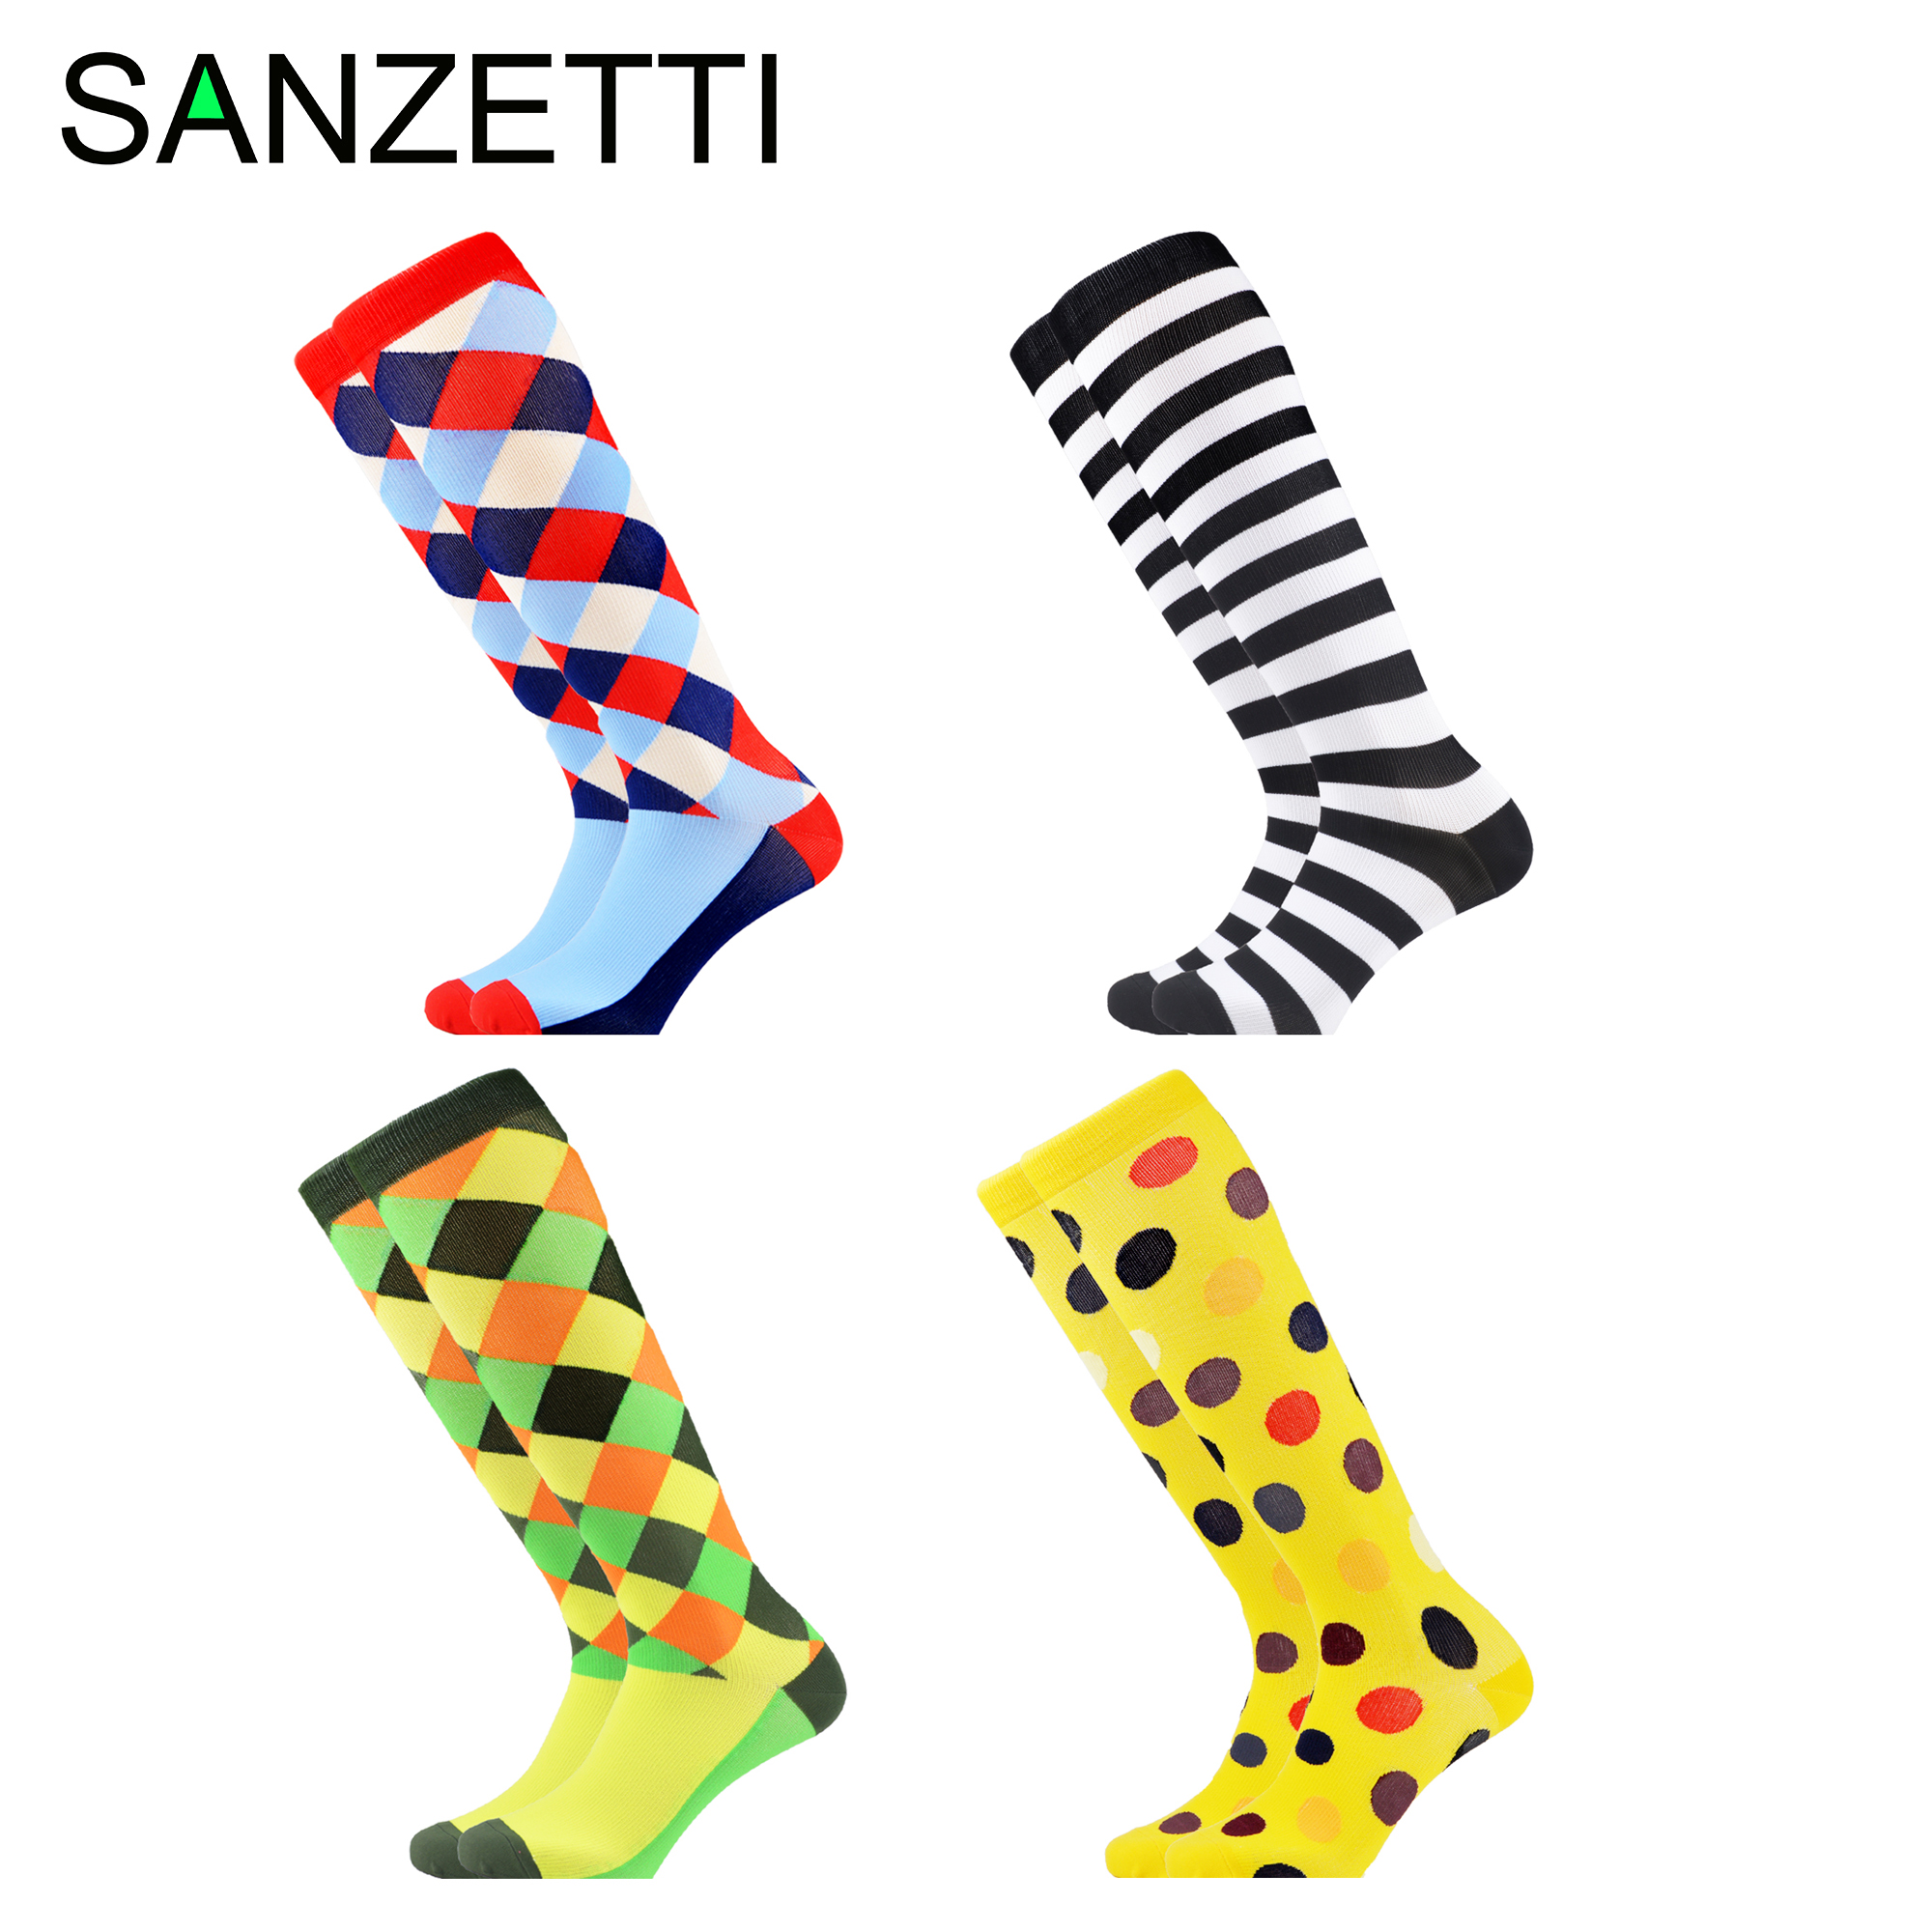 SANZETTI 4 Pairs/Lot Women Novelty Dot Striped Combed Cotton Compression Socks Below Knee Plaid Anti-Fatigue Long Colorful Socks